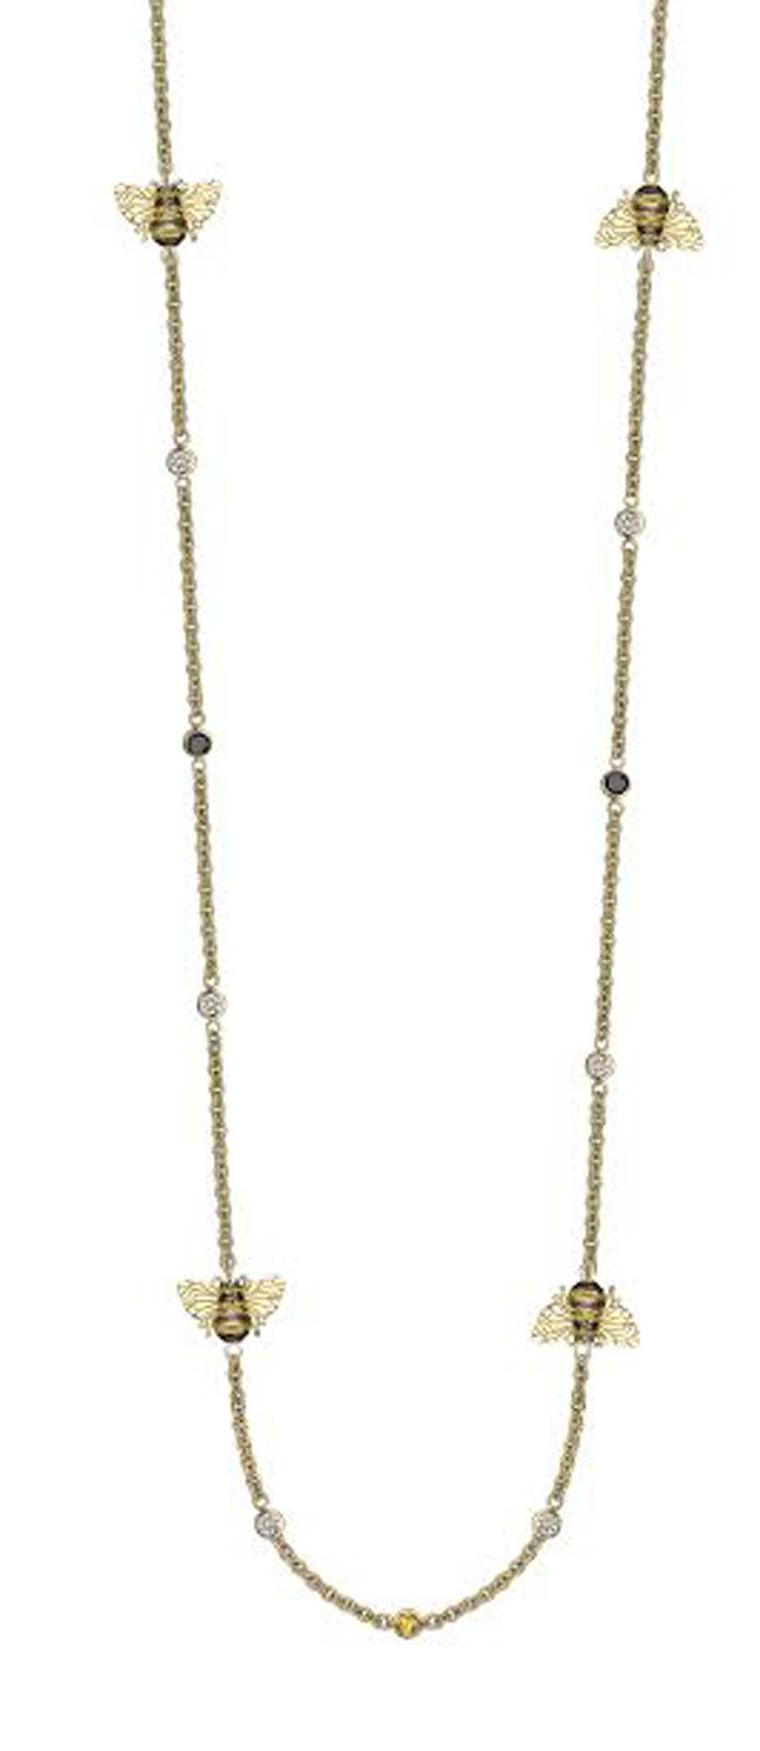 Theo Fennell bee necklace in yellow gold, with black and white diamonds and yellow sapphires.